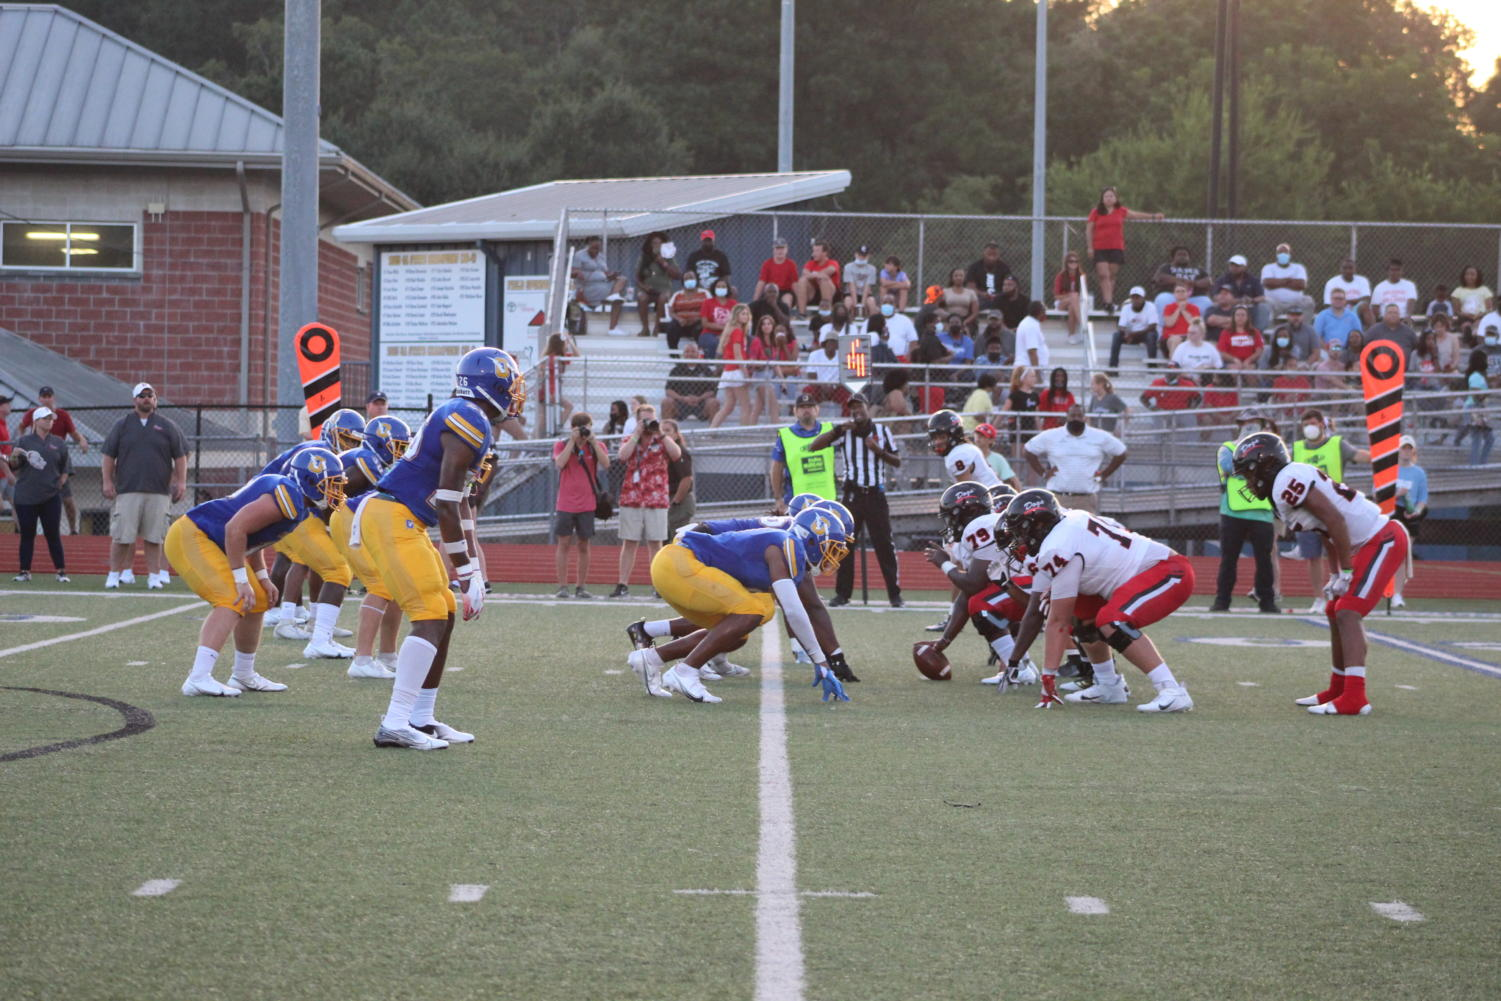 The Chargers prepare for a play against the Brandon Bulldogs on August 27. The Chargers won the game 24-17.